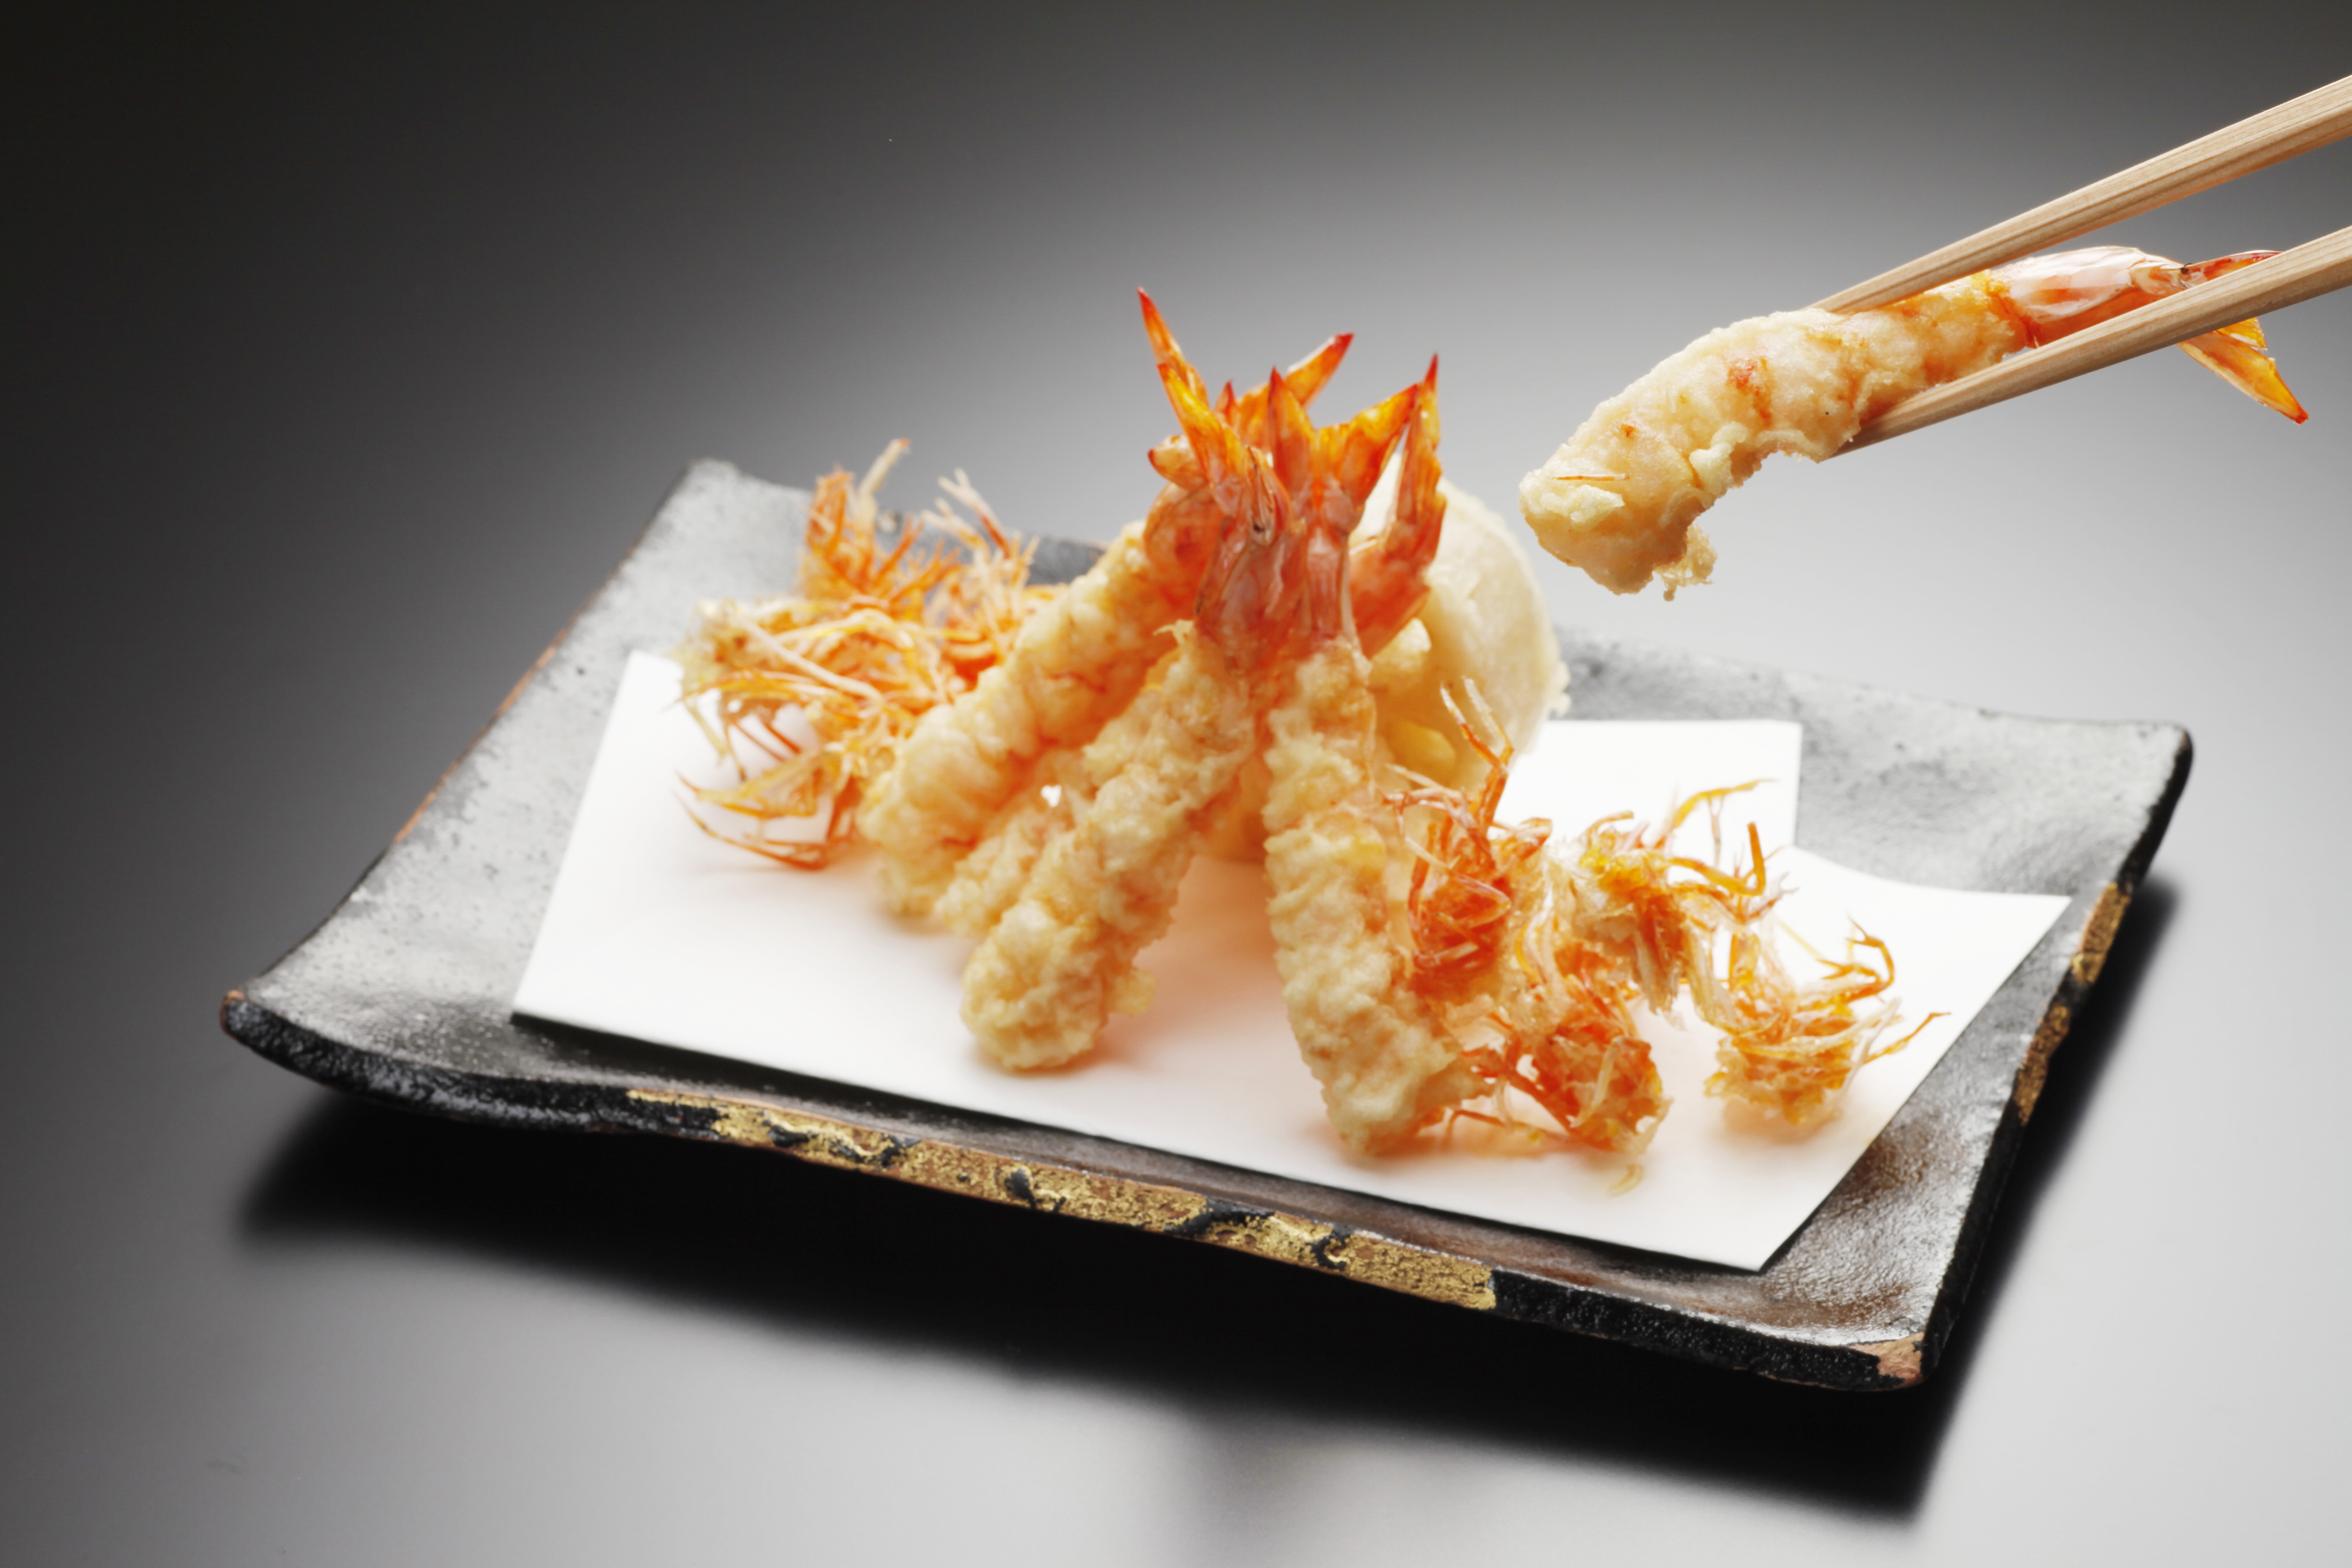 Tempura what is this and how to cook this dish in your kitchen